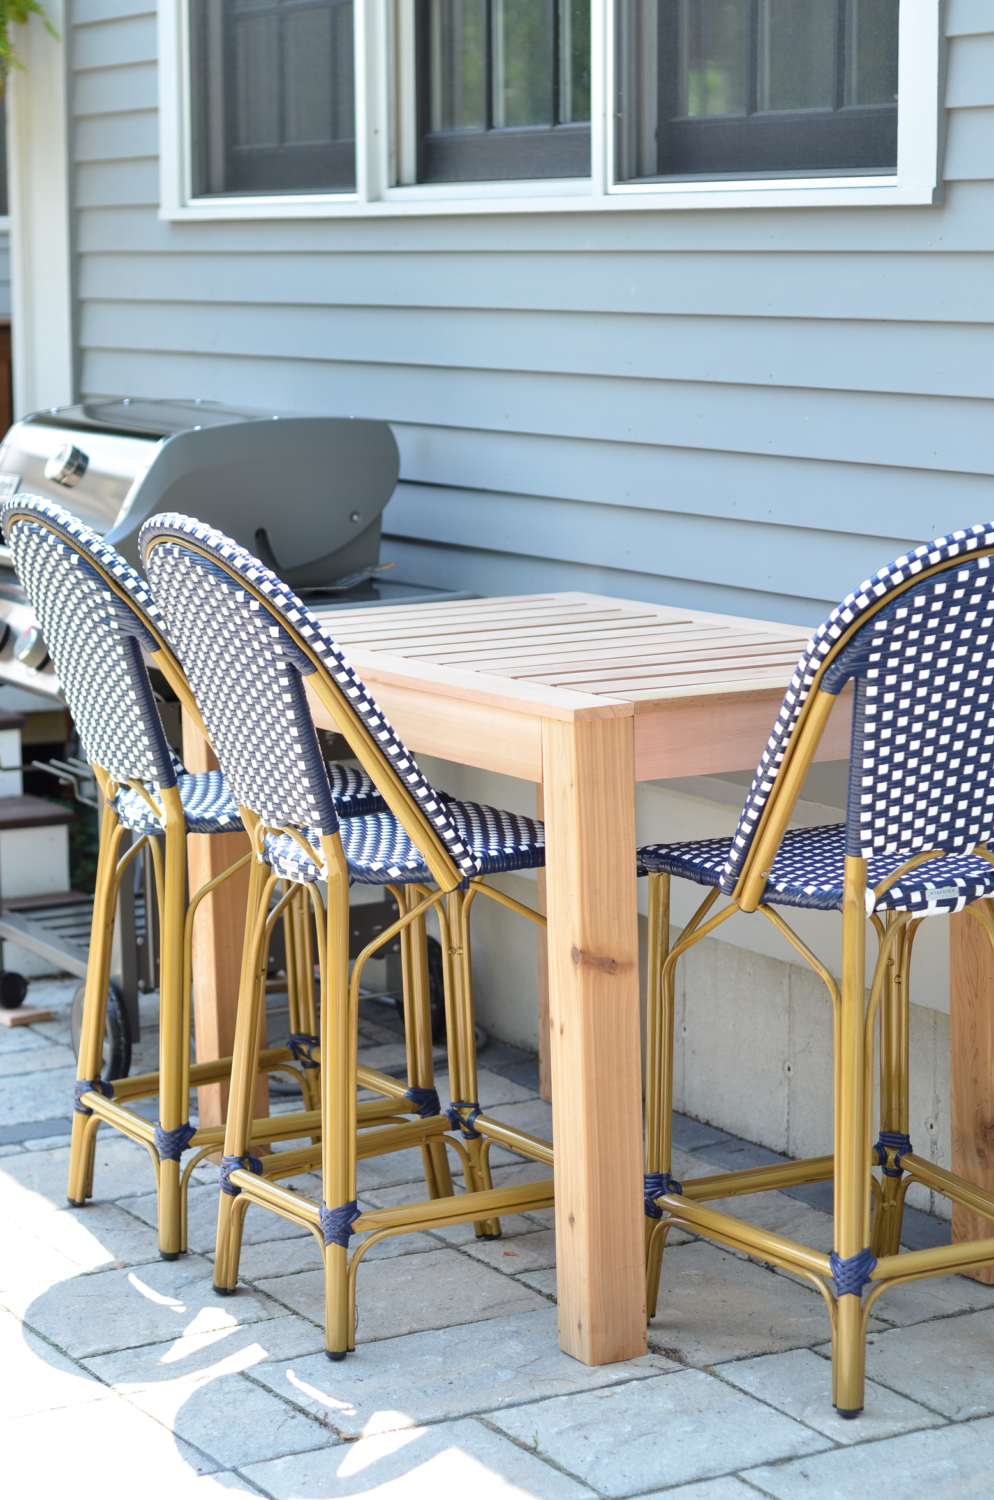 DIY Outdoor Bar Table - Free Plans! - The Chronicles of Home